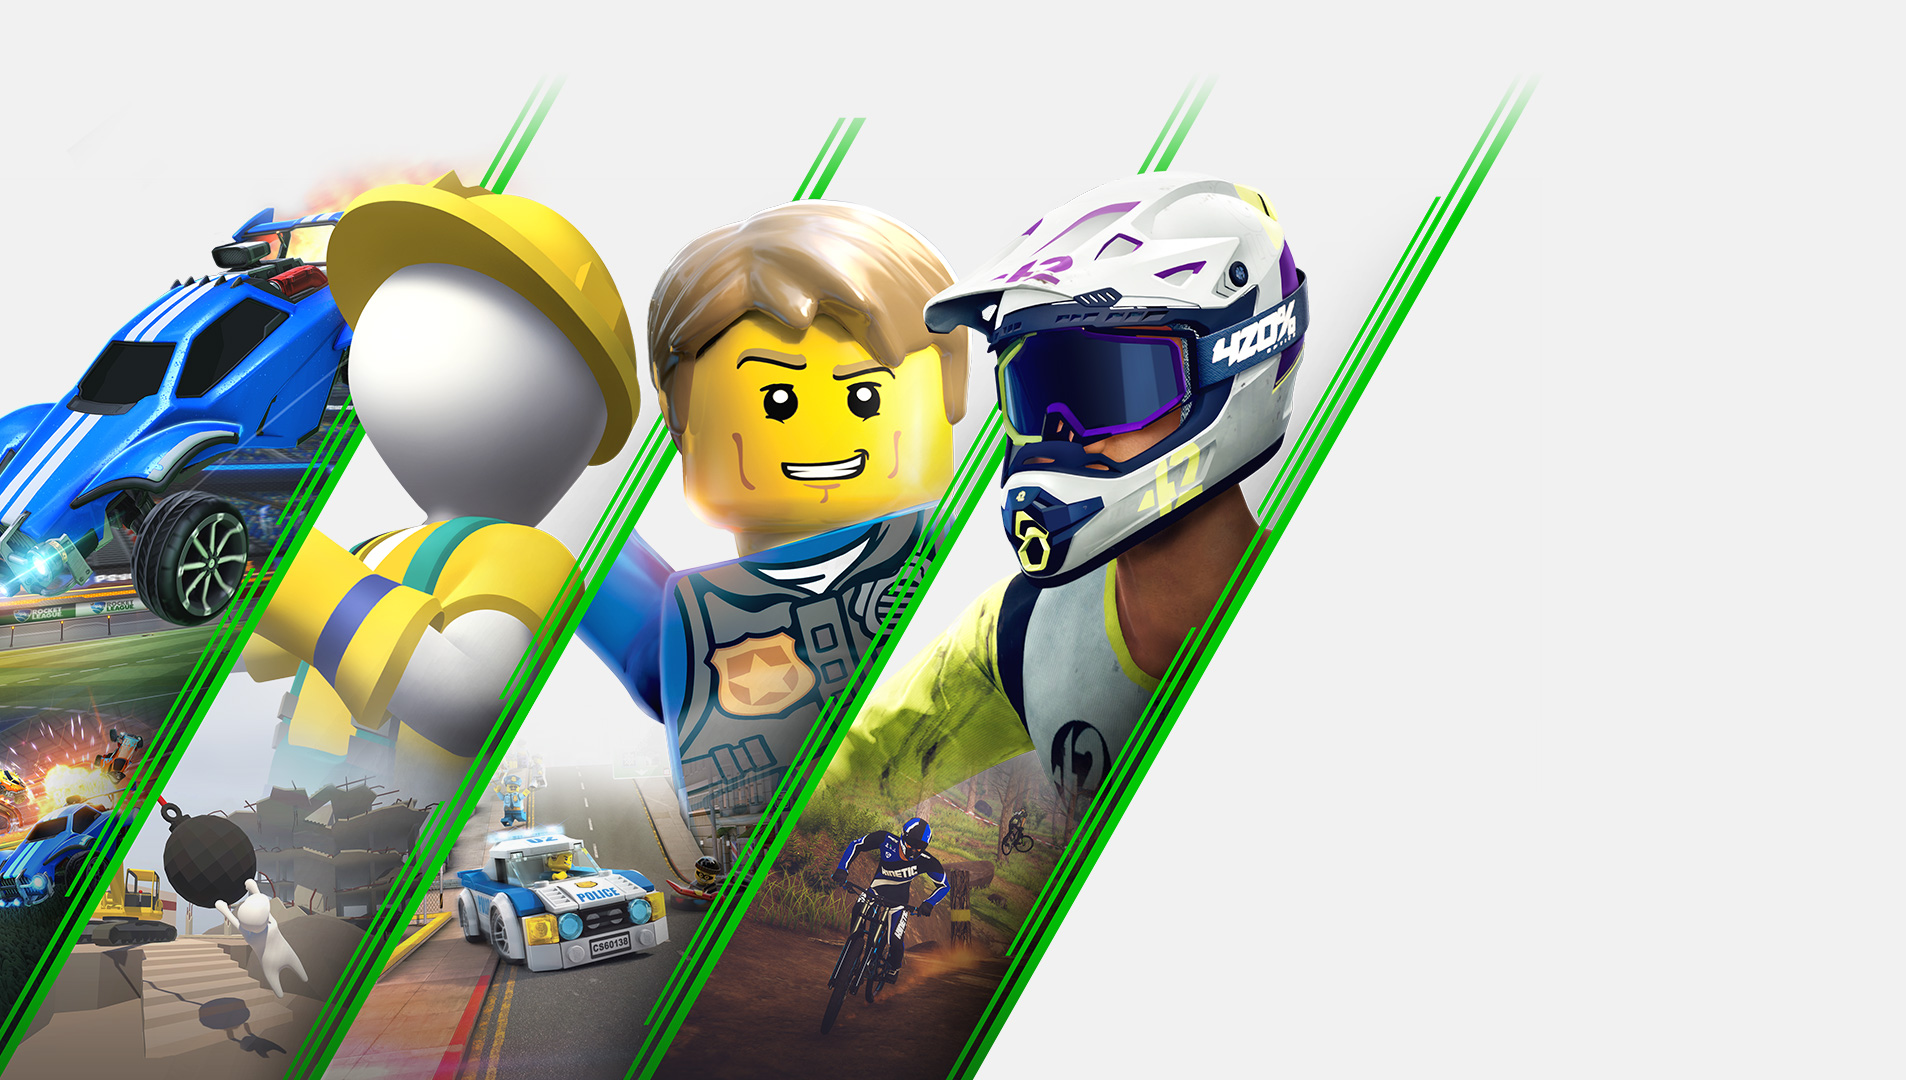 Collage de personajes de Rocket League, Human Fall Flat, Lego City Undercover, Descenders y Guacamelee 2